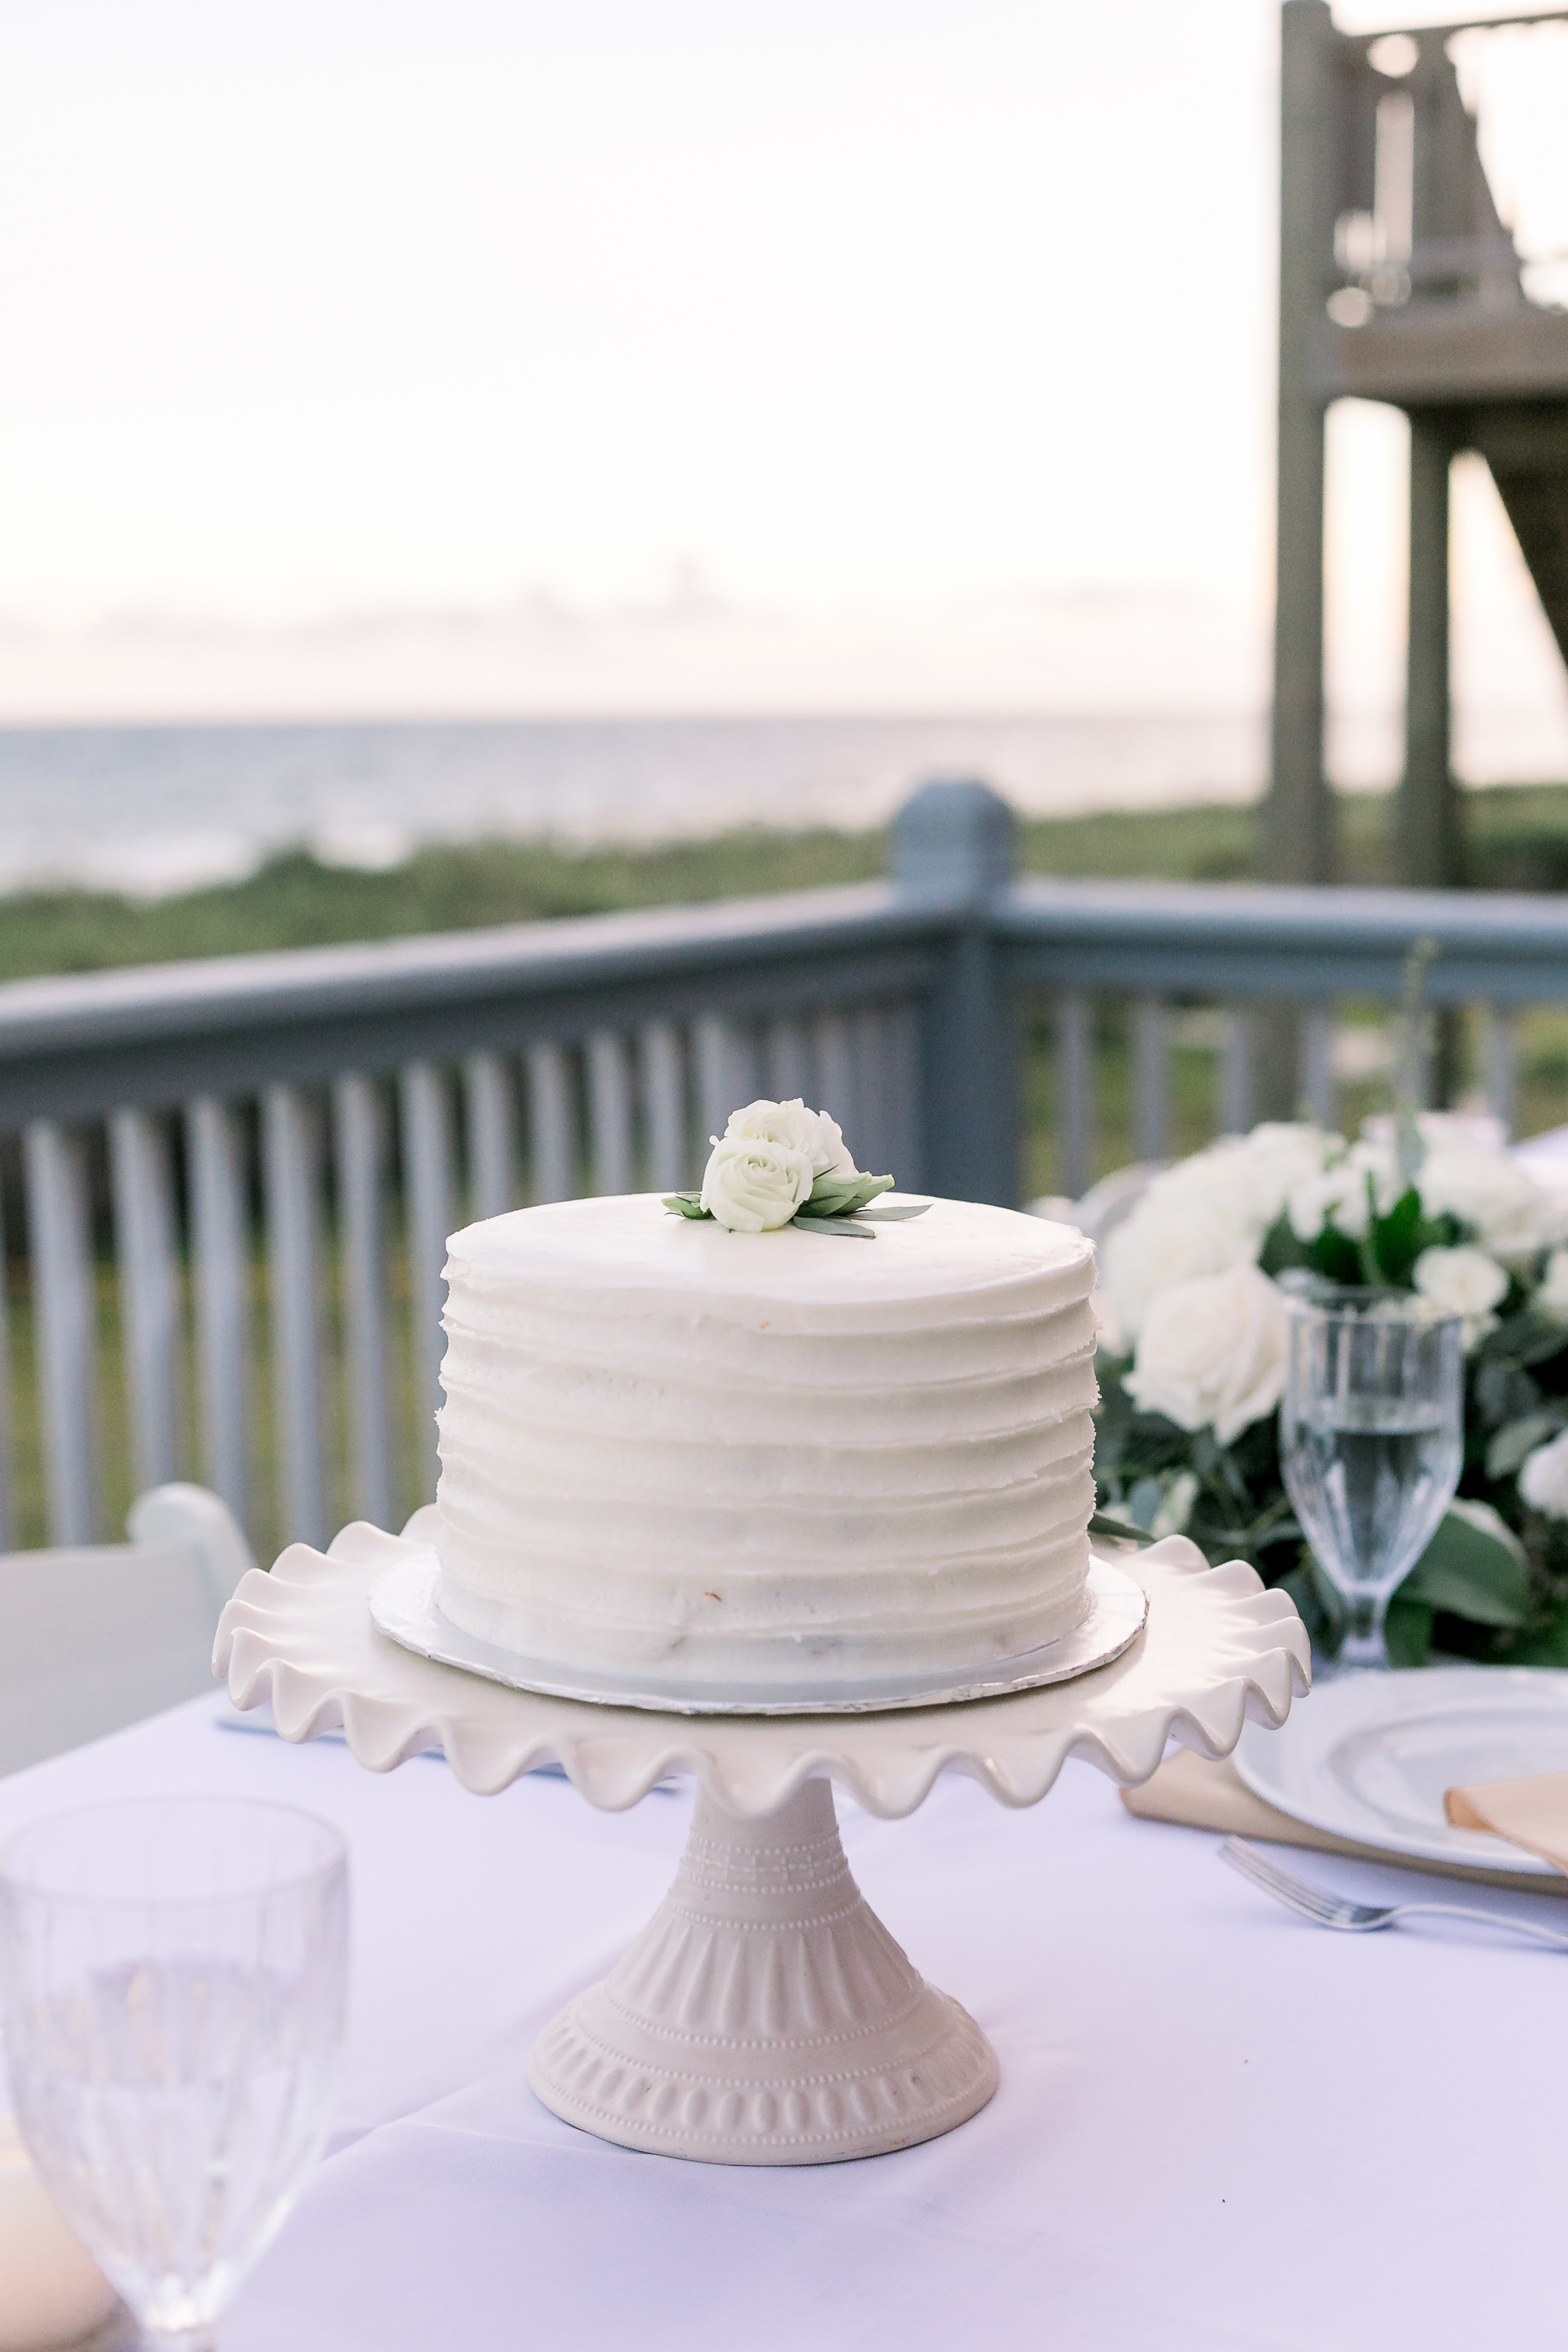 KMI Wedding Cake sits on table for Oak Island NC Beach Elopement